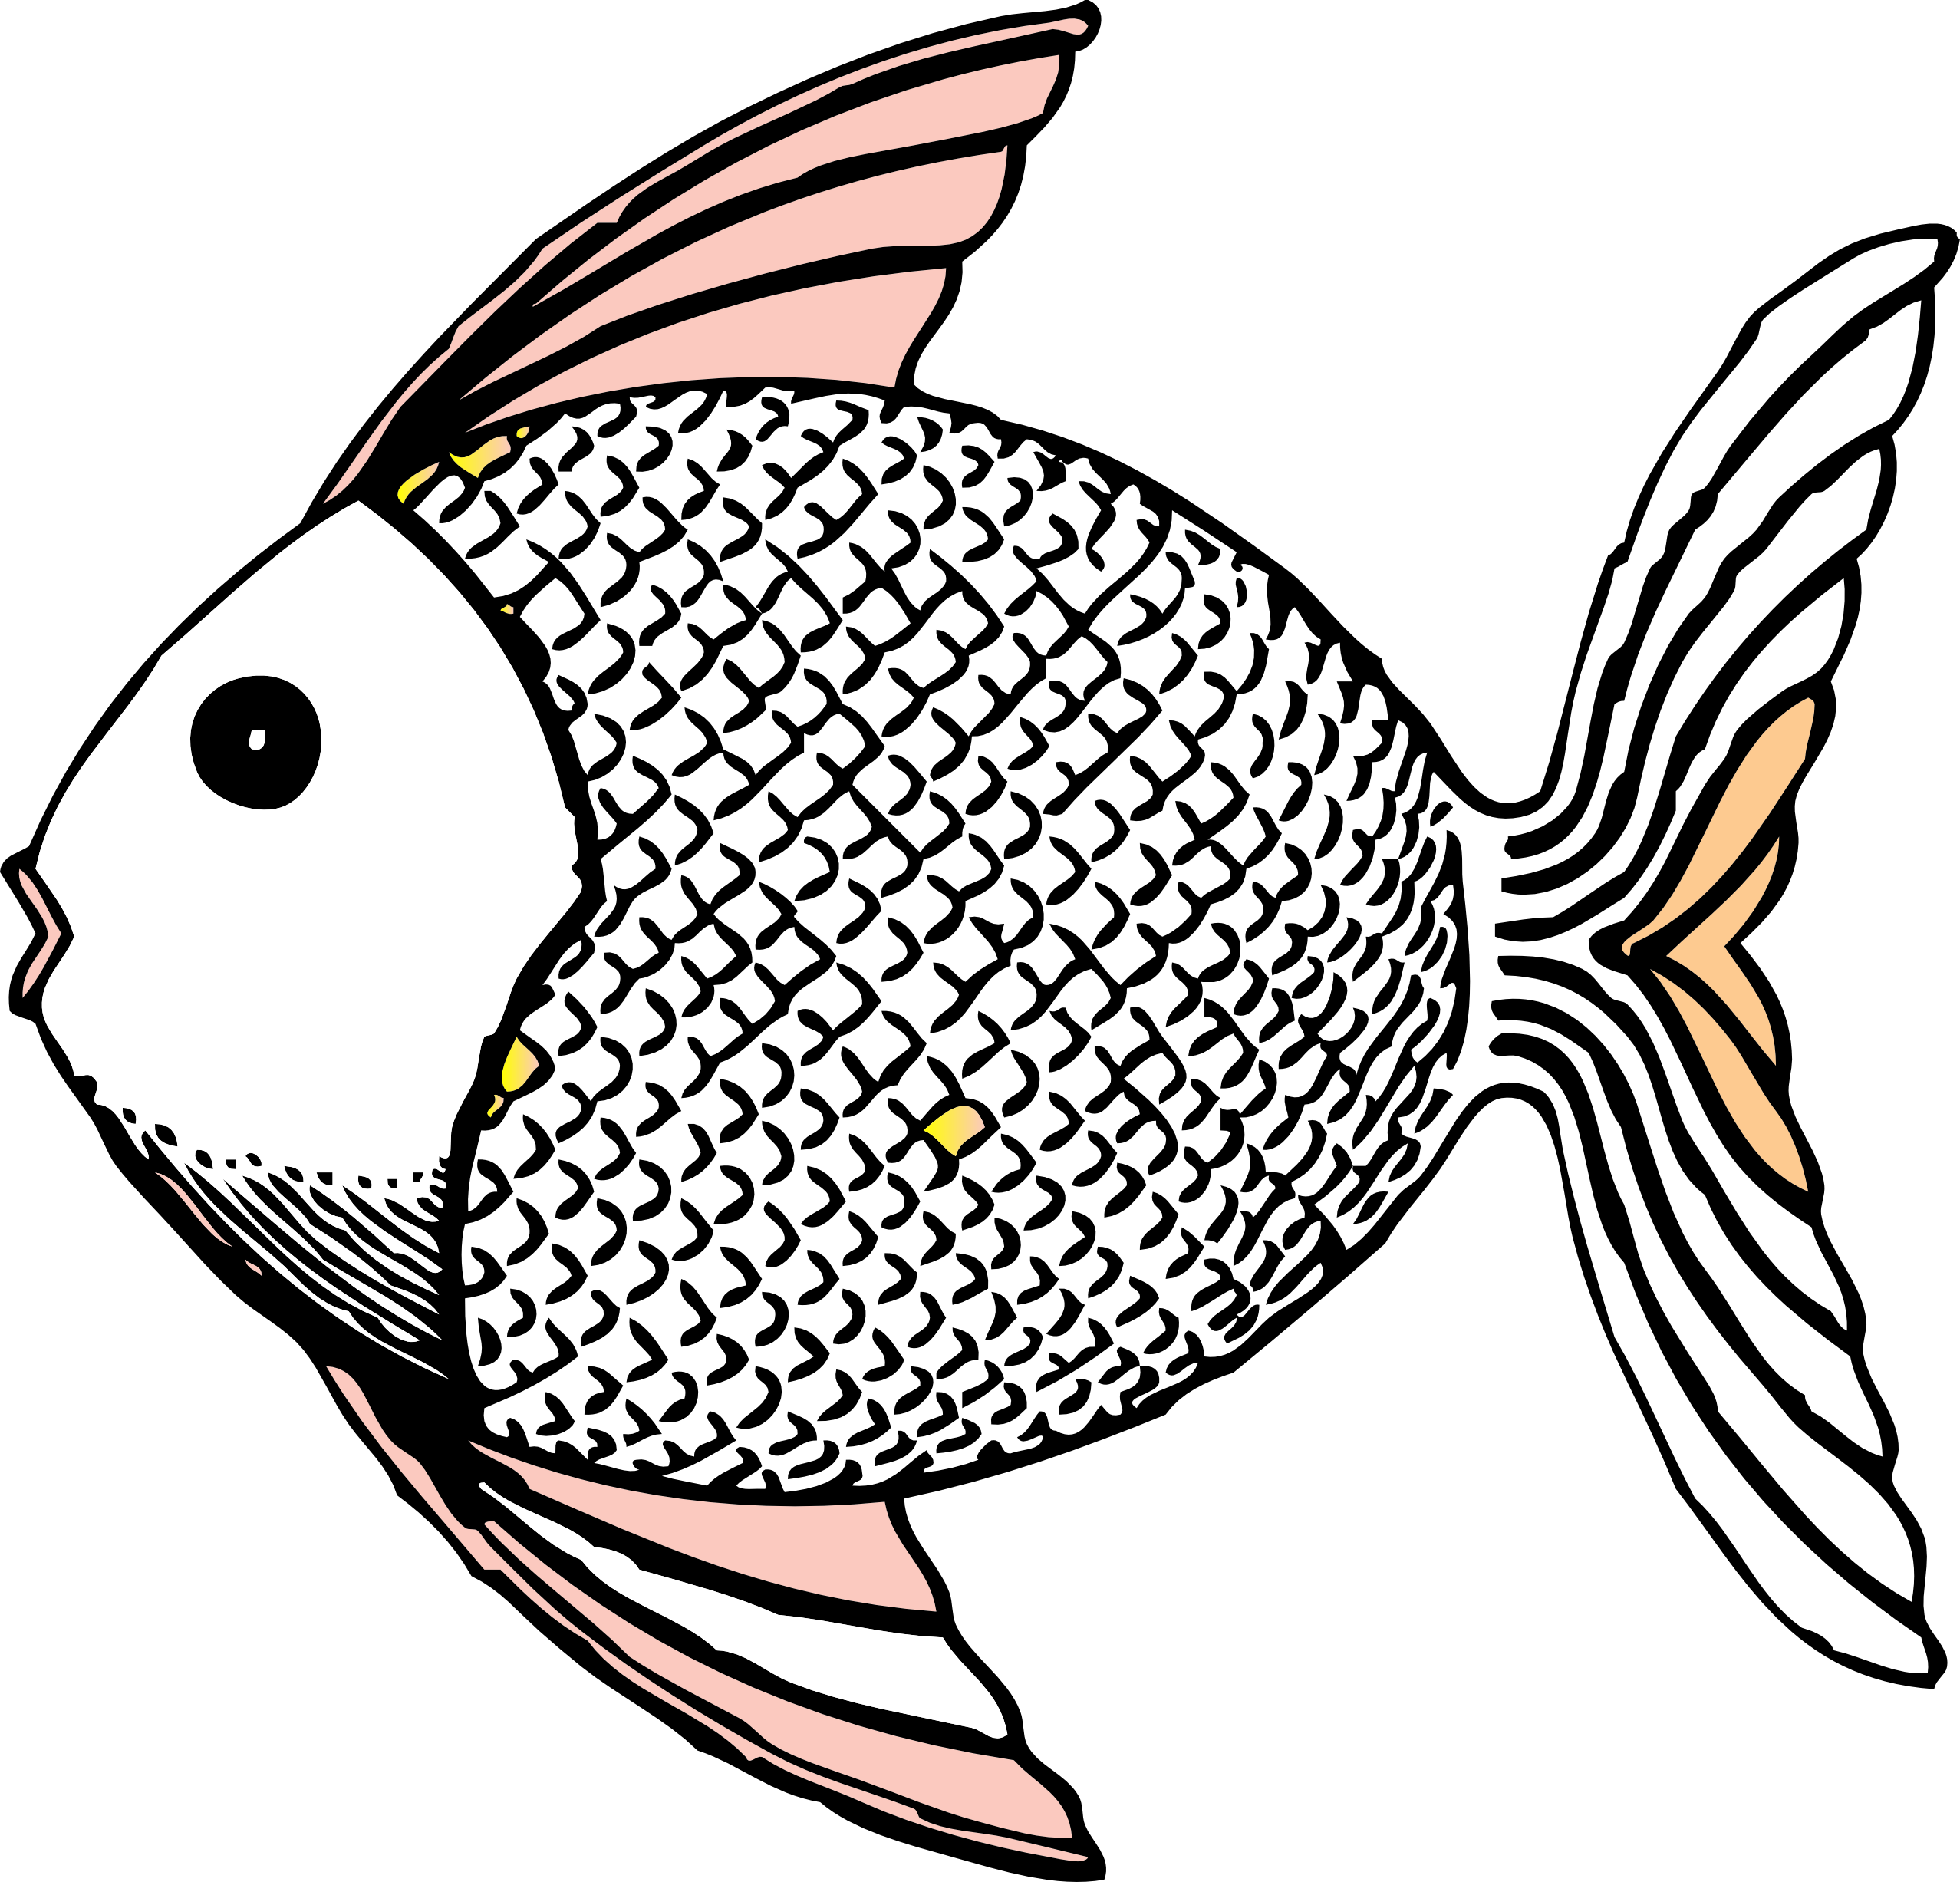 1 fish clipart clipart black and white download Fish Clip Art Black and White | tropical fish black white line art ... clipart black and white download